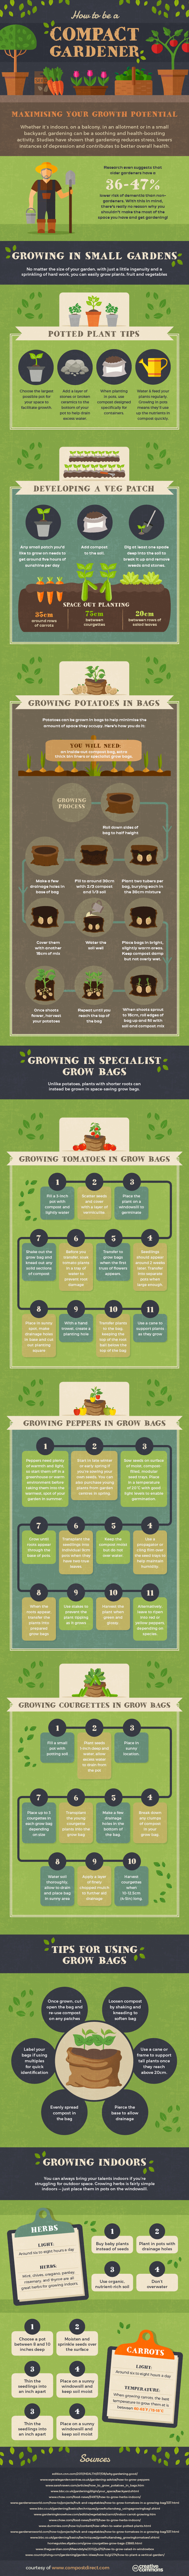 How to be a compact gardener